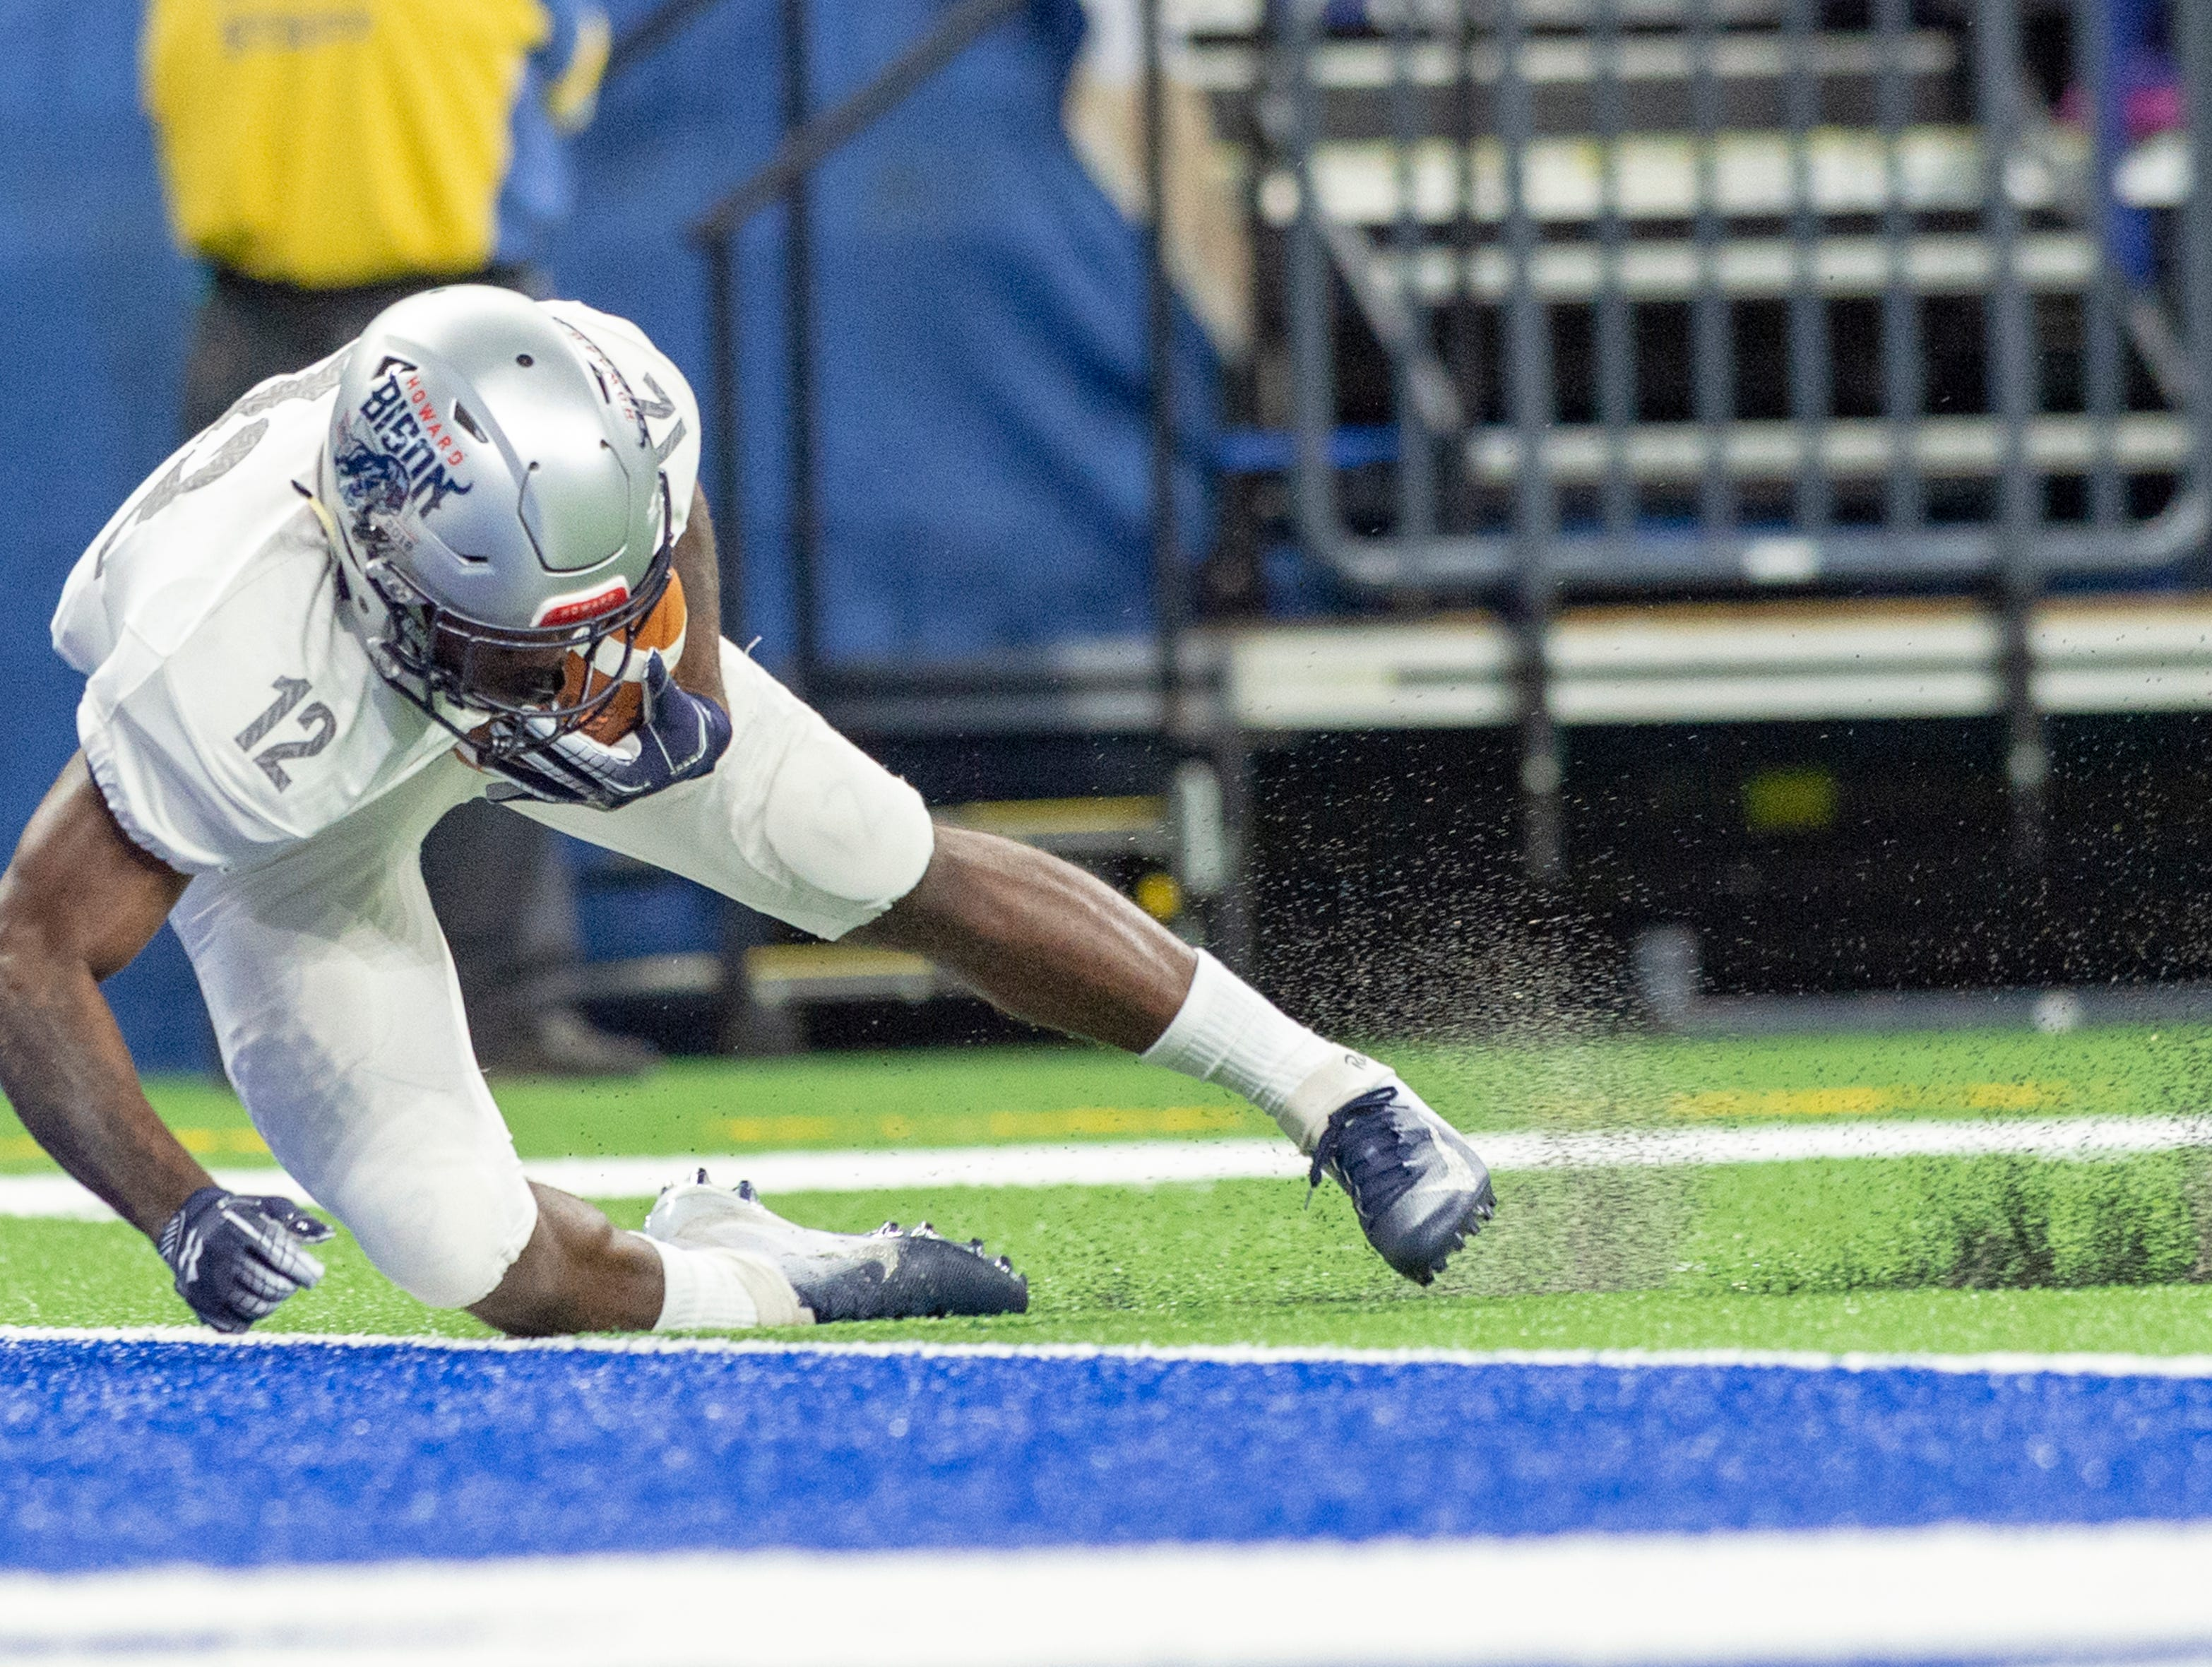 Howard Bison wide receiver Jequez Ezzard (12) stops the punted ball just short of the goalie during the first half of action. Howard Bison took on Bethune Cookman Wildcats in the Circle City Classic game, Saturday, Sept. 22, 2018, at Lucas Oil Stadium.